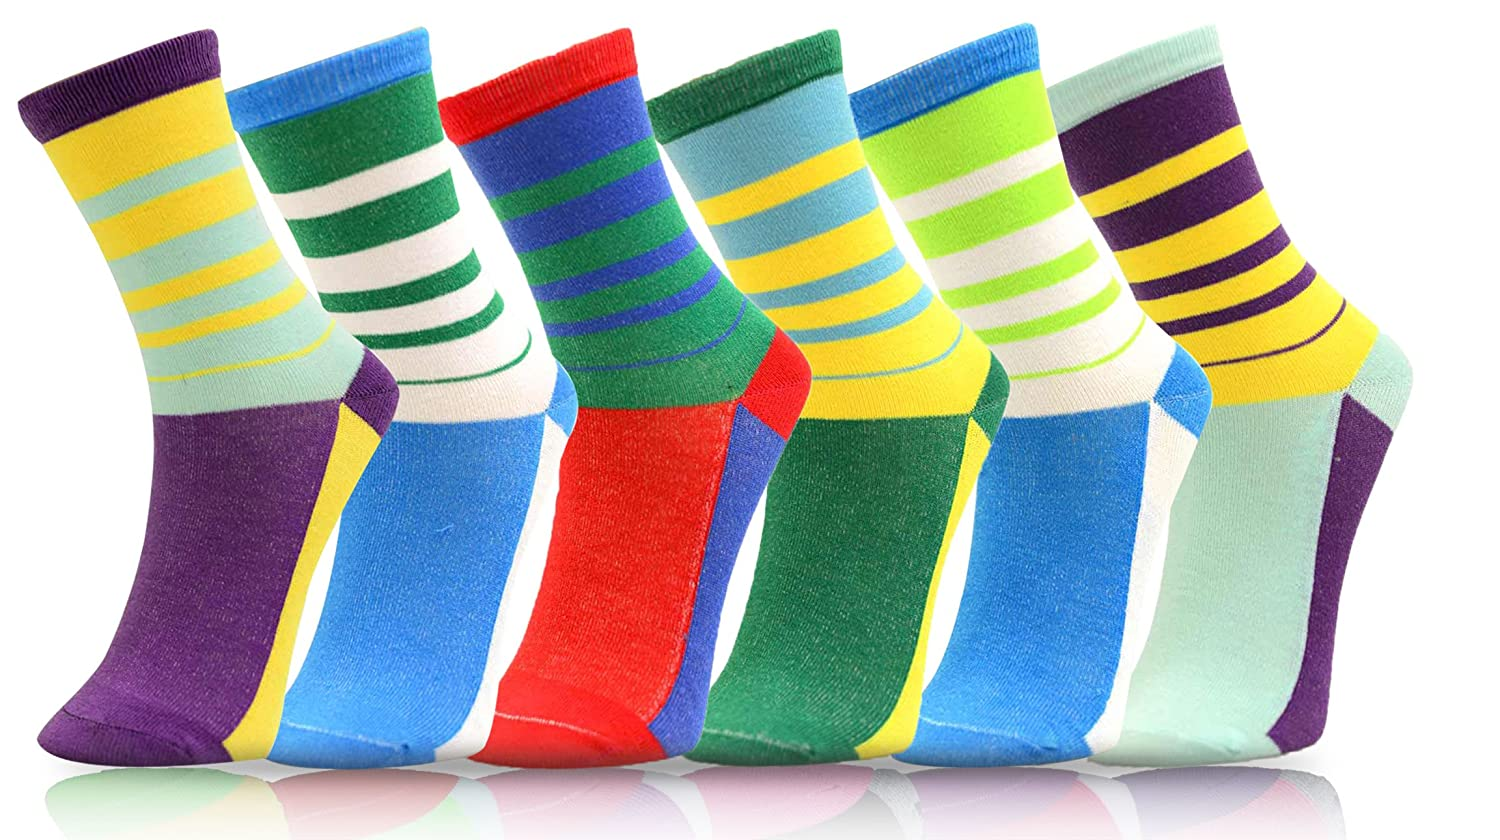 ICONOFLASH Casual Printed Bundle Crew Socks, Assorted Colors, Packs of 6